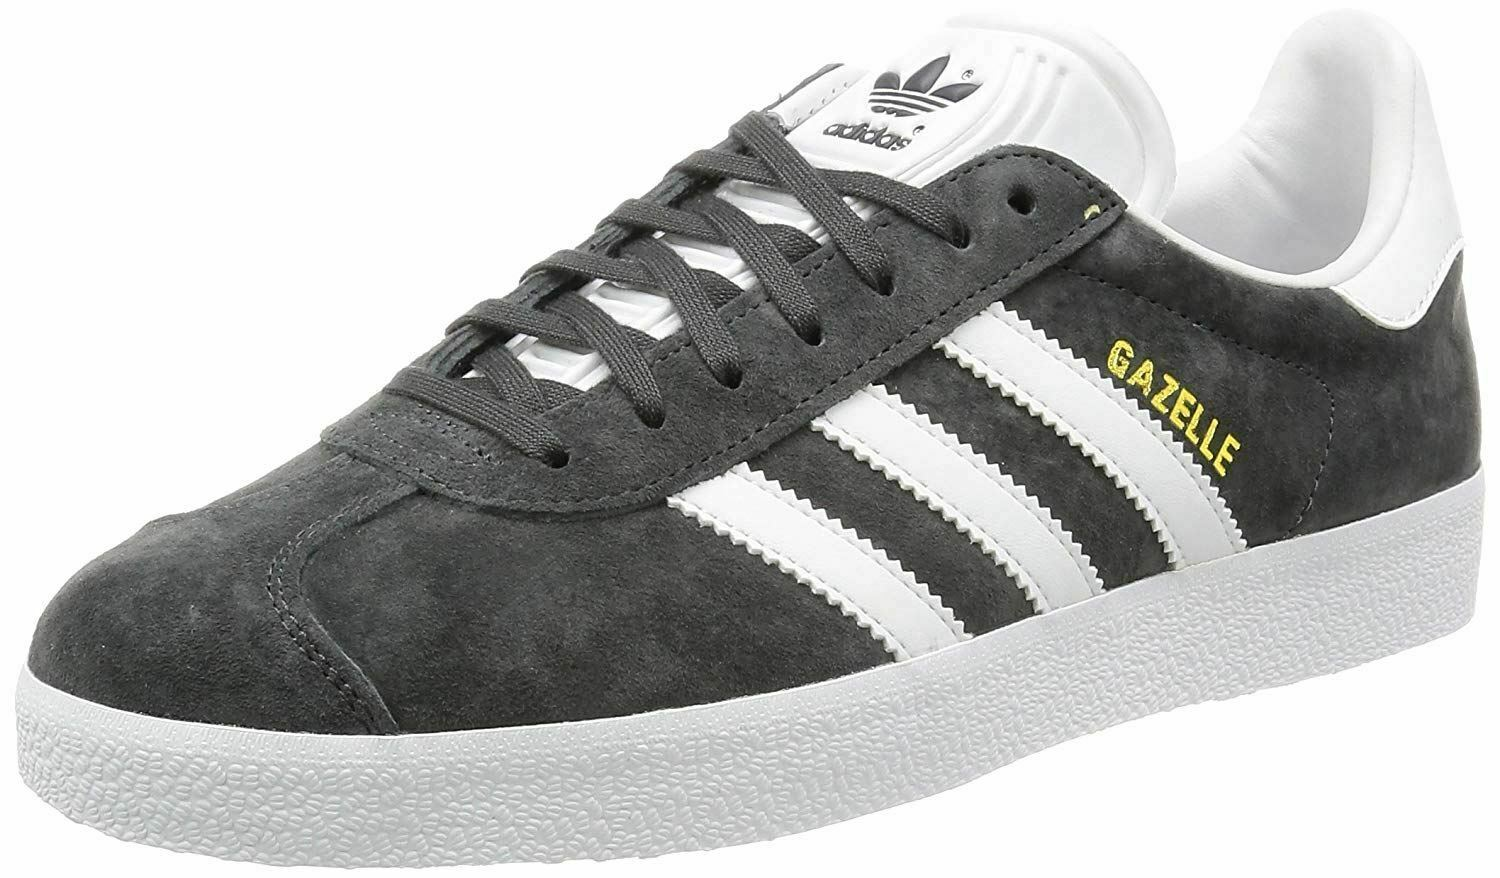 Adidas Original Gazelle Grey White Mens Suede Trainers